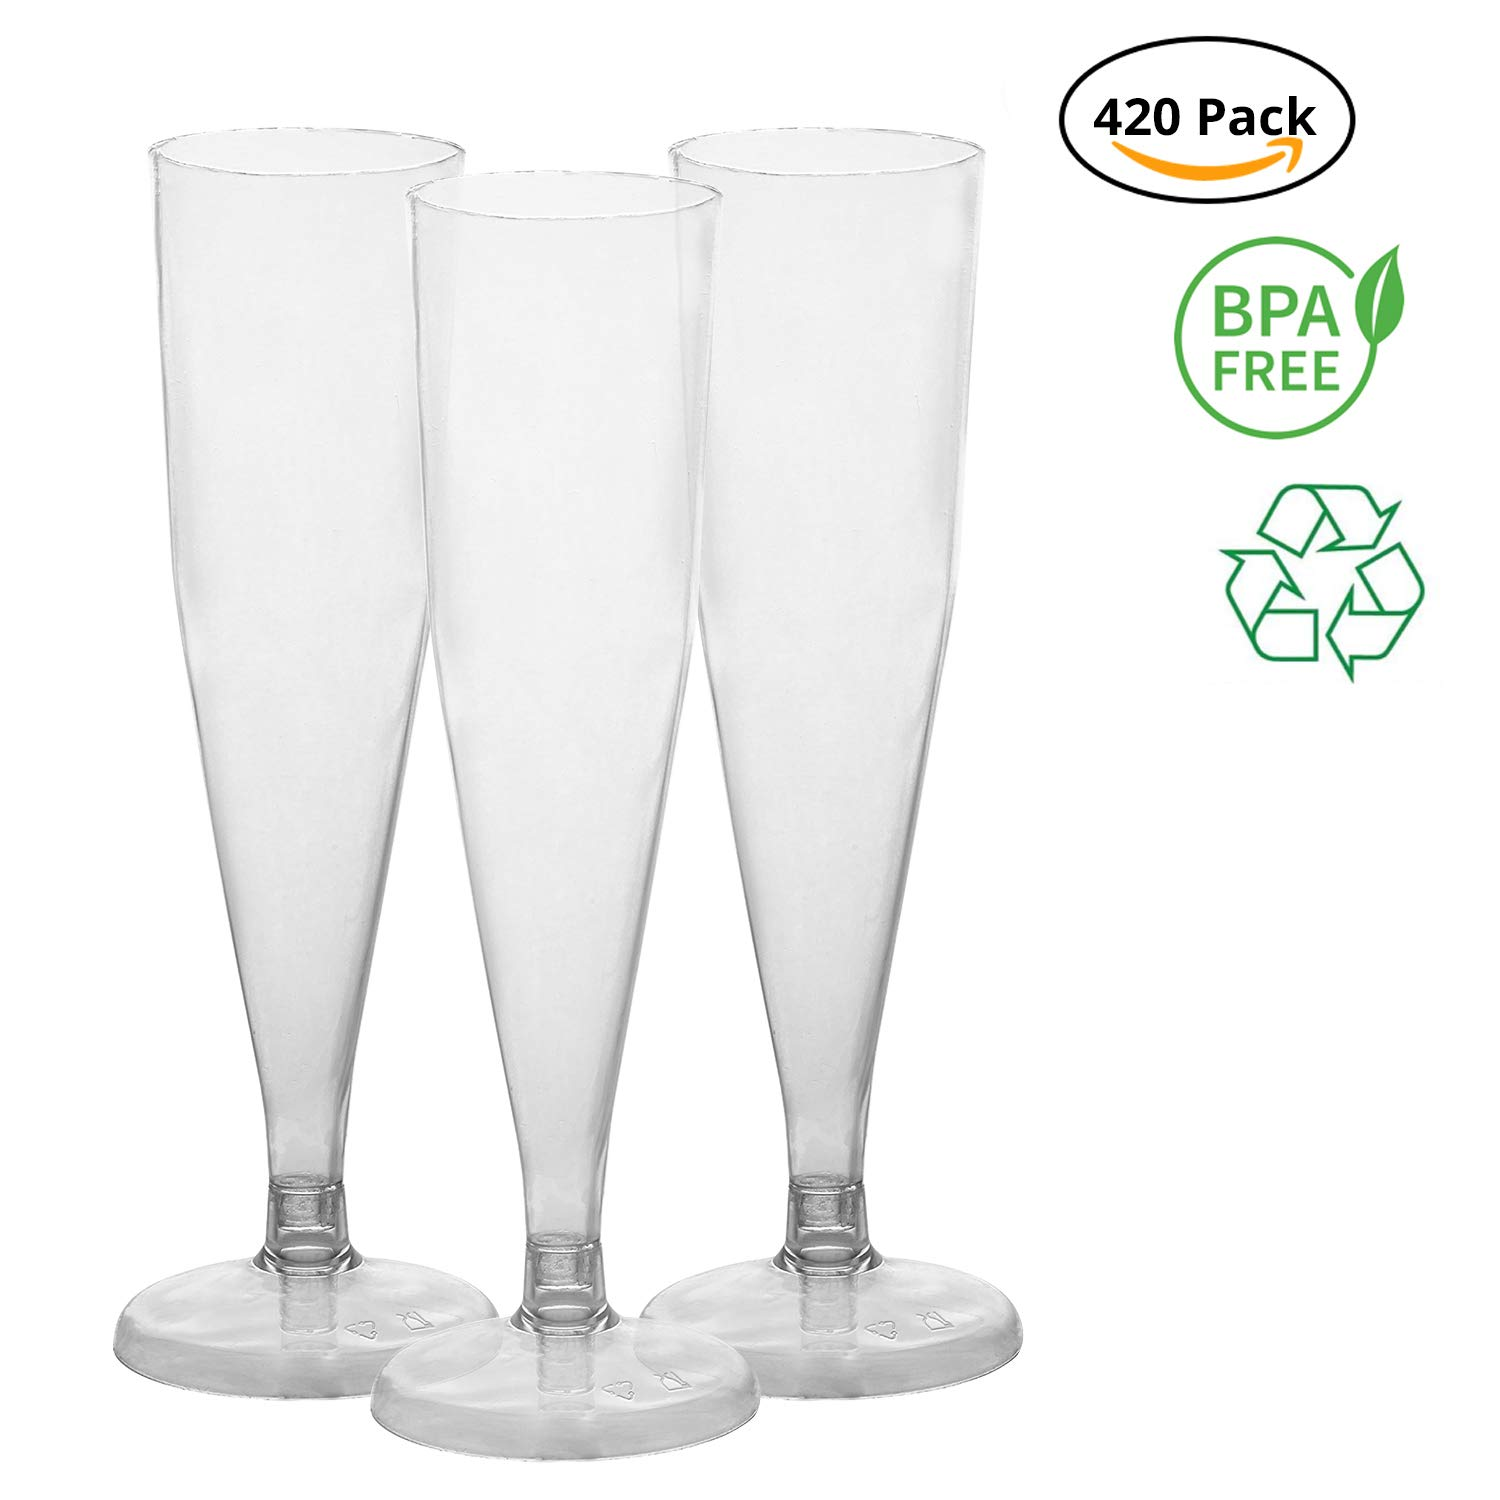 Party Joy [420 Ct] Plastic 6-oz Champagne Flutes (Pack of 420) | BPA Free-Flutes| Heavy Duty Premium Plastic Champagne Flutes for Wedding, Parties & More